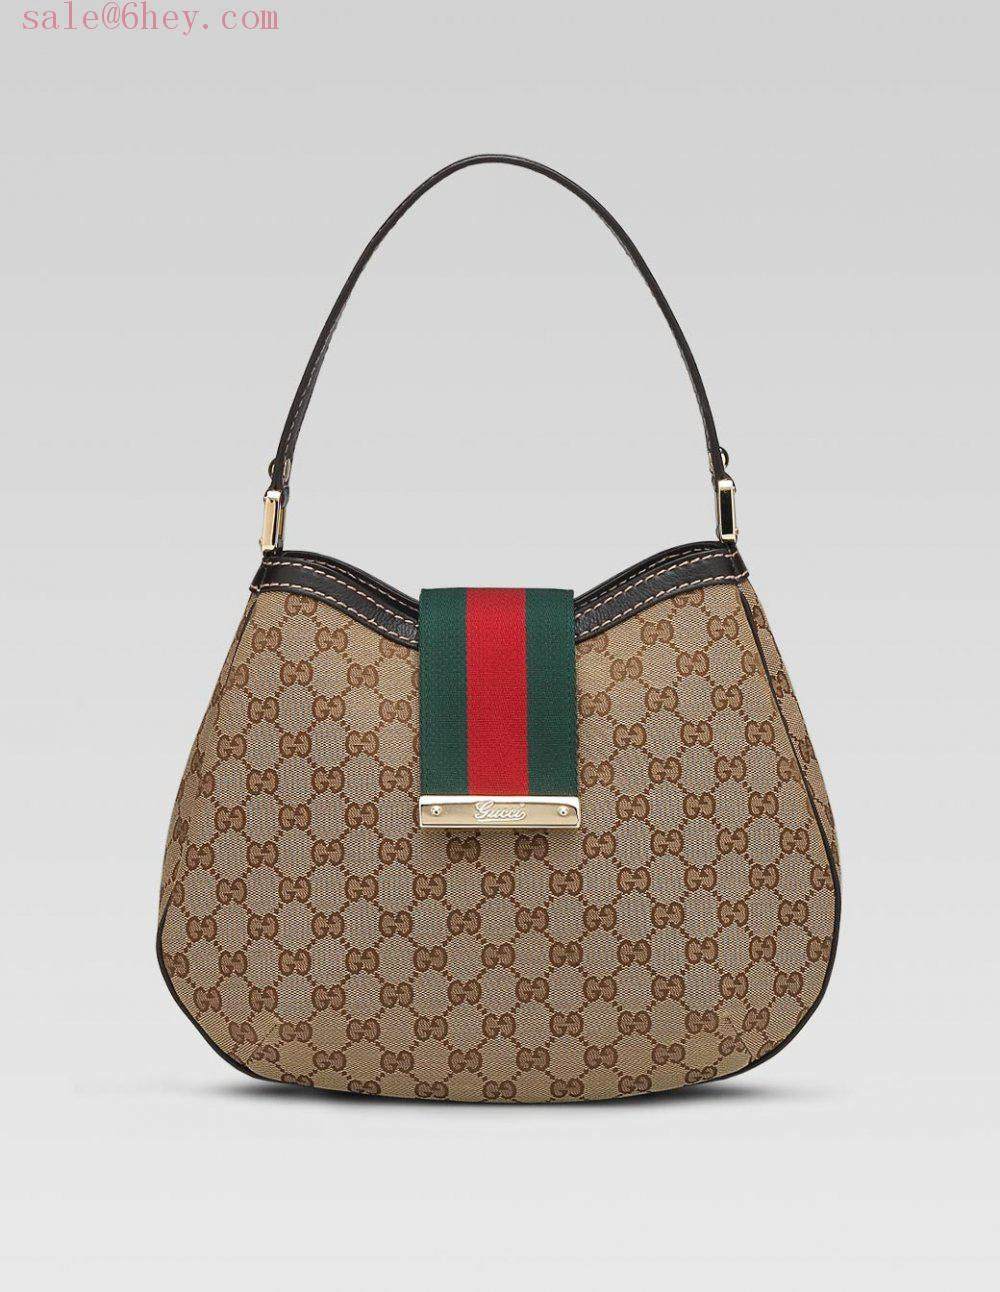 used gucci handbags